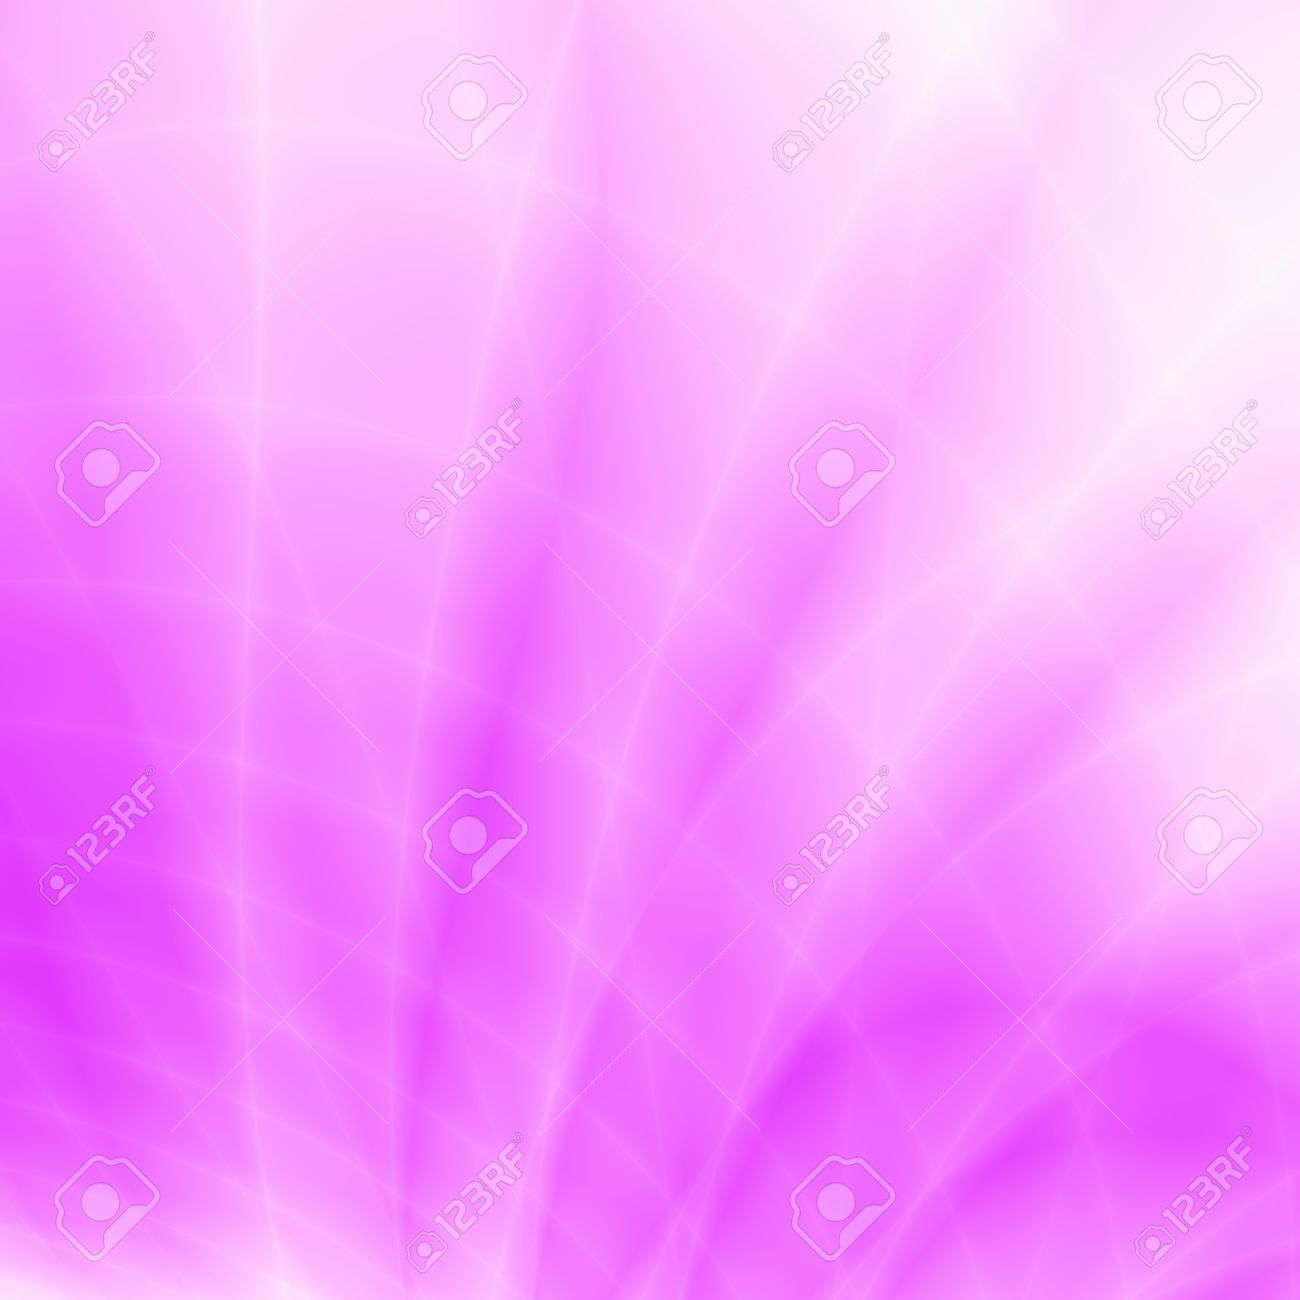 Light Purple Pattern Abstract Website Background Stock Photo ... for Light Background Patterns For Websites  545xkb